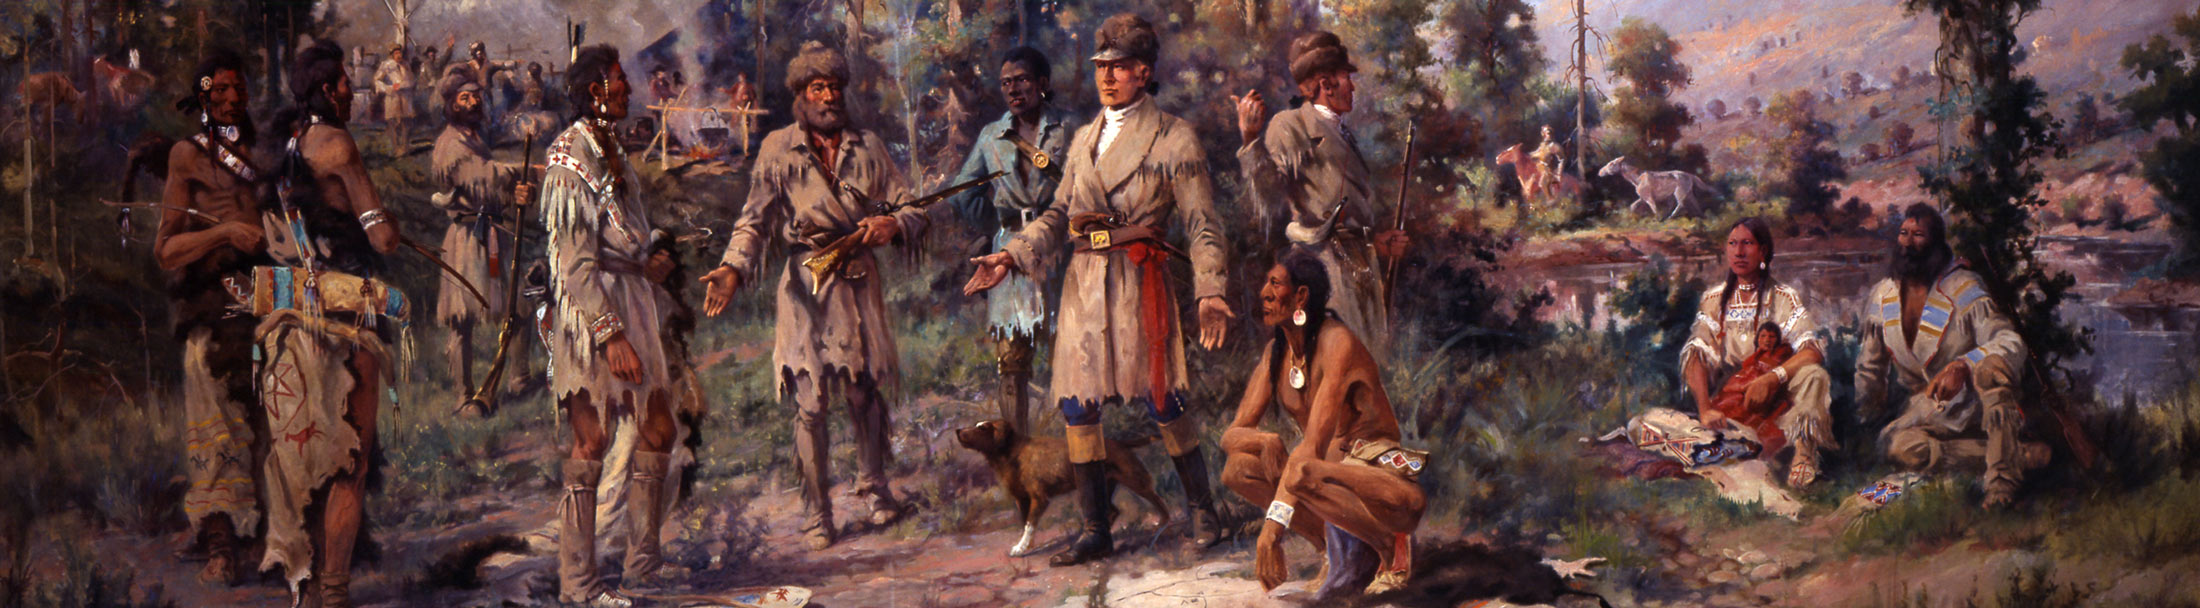 Lewis and Clark + Corps Of Discovery